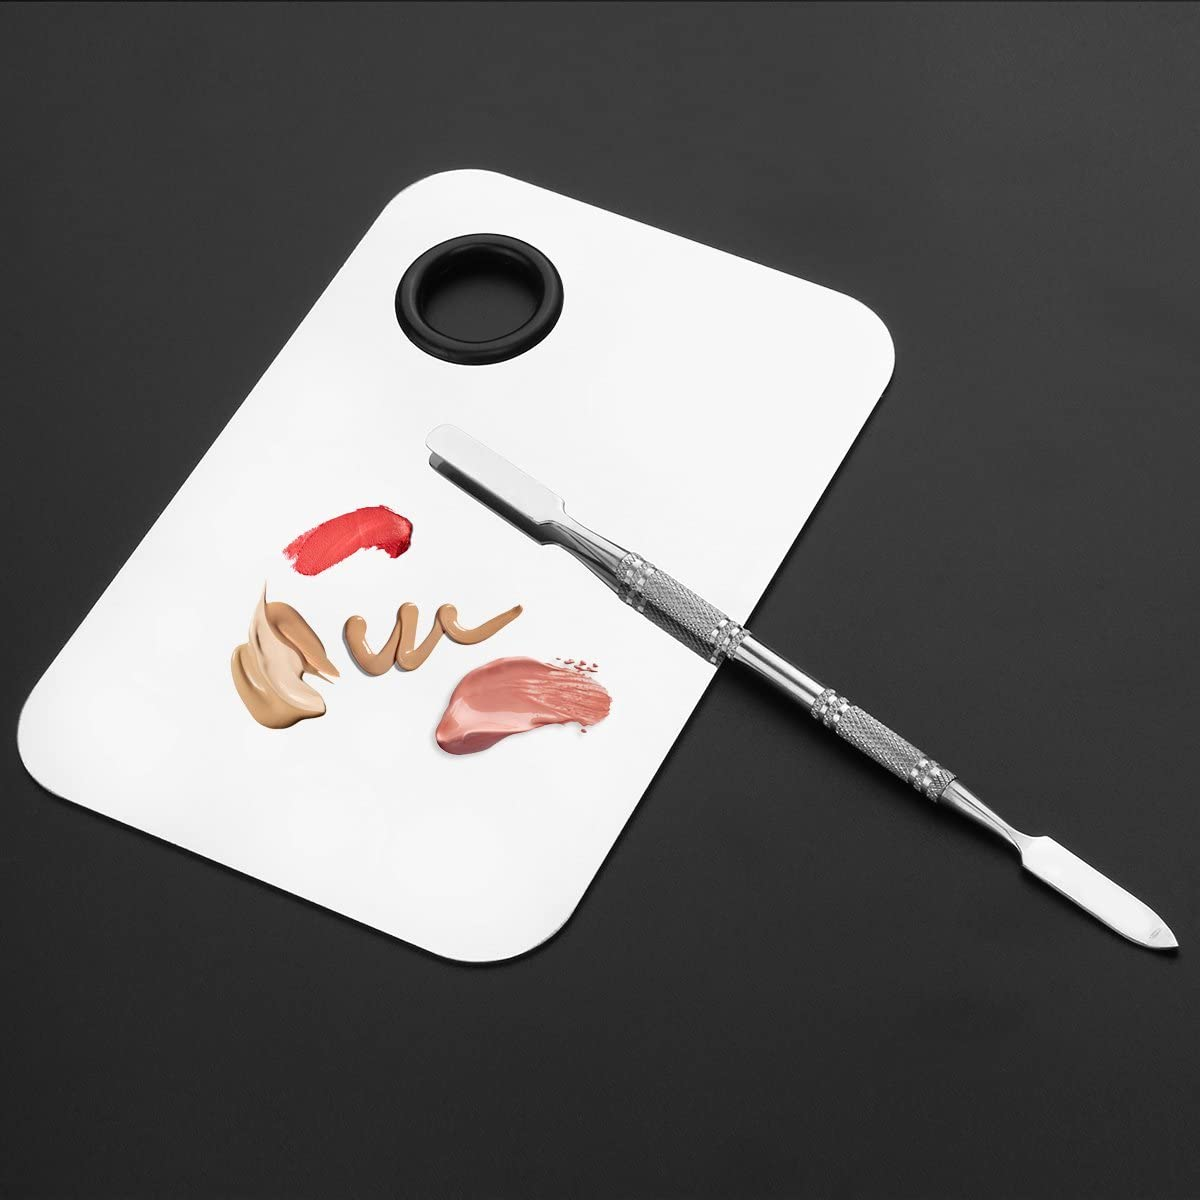 Makeup Palette Cosmetic Palette with Spatula Tool Stainless Steel Nail Manicure Tool (Silver)